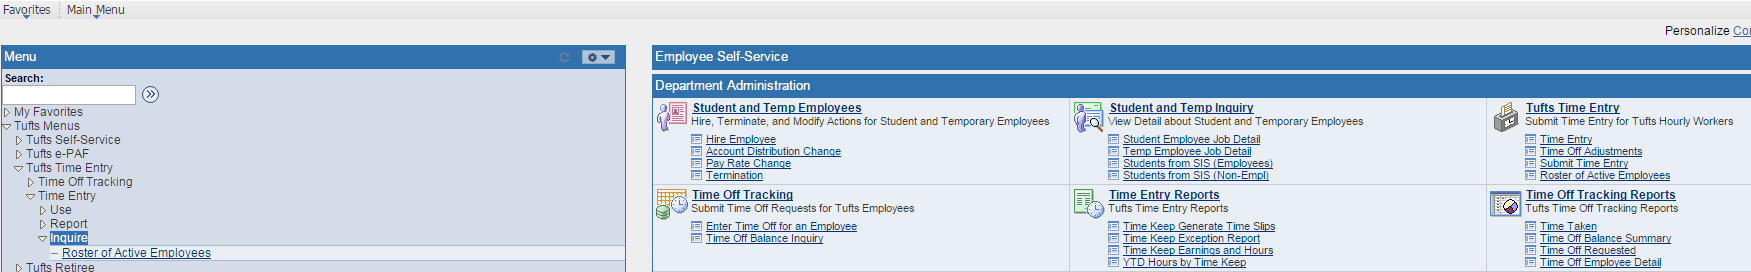 ROSTER As mentioned earlier, within Time Entry, after you have entered your Time Keep and the Pay End date, there is a tab called Roster of Employees that lists the non-exempt employees in the Time